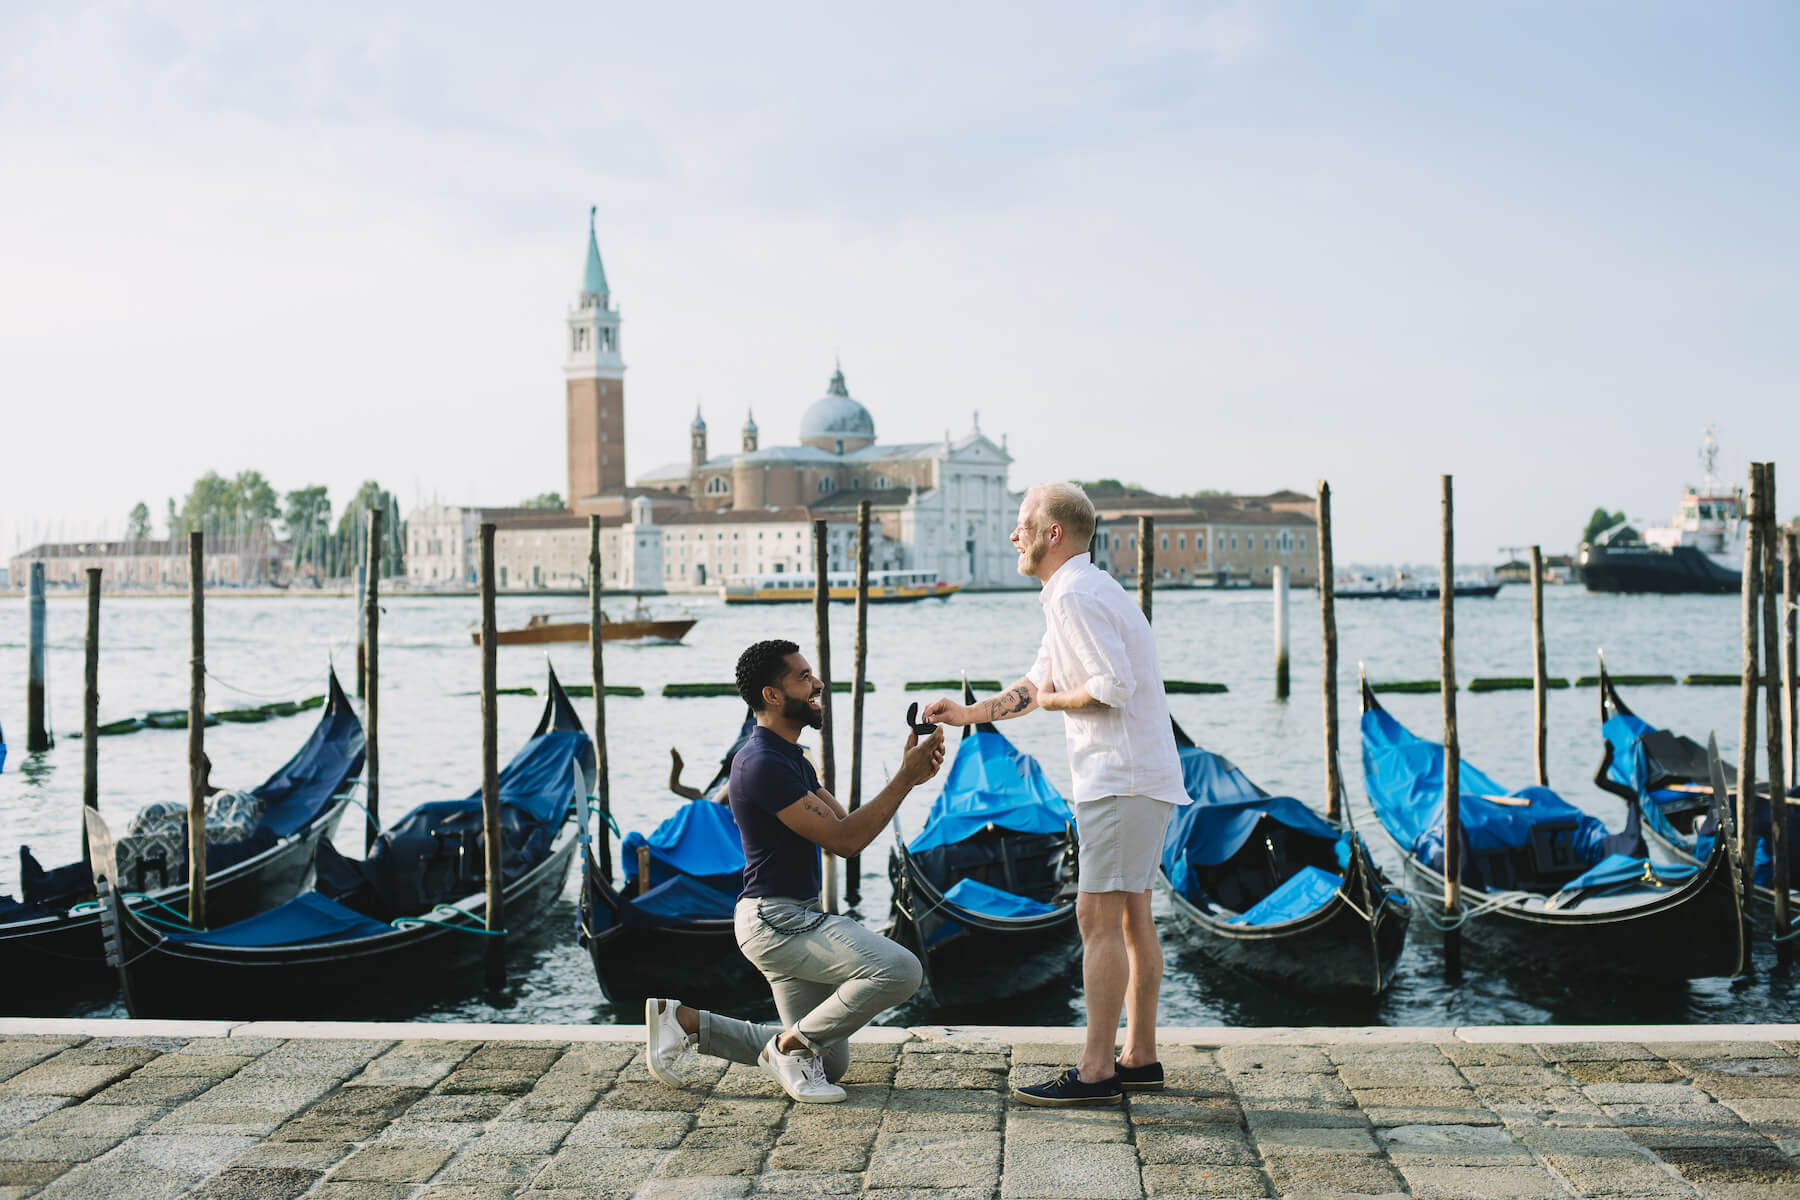 LGBTQ couple, and one man is proposing to the other in Venice, Italy